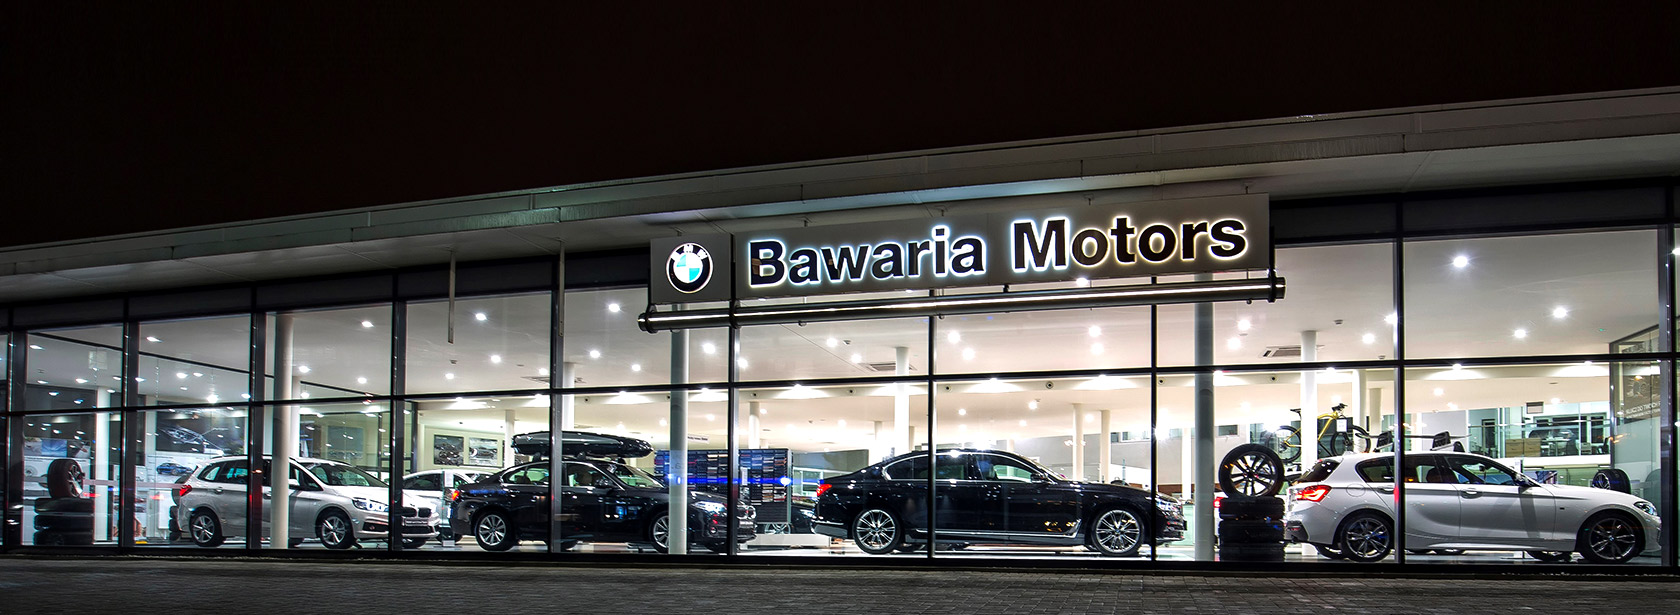 Salon Dealer BMW Bawaria Motors Warszawa.